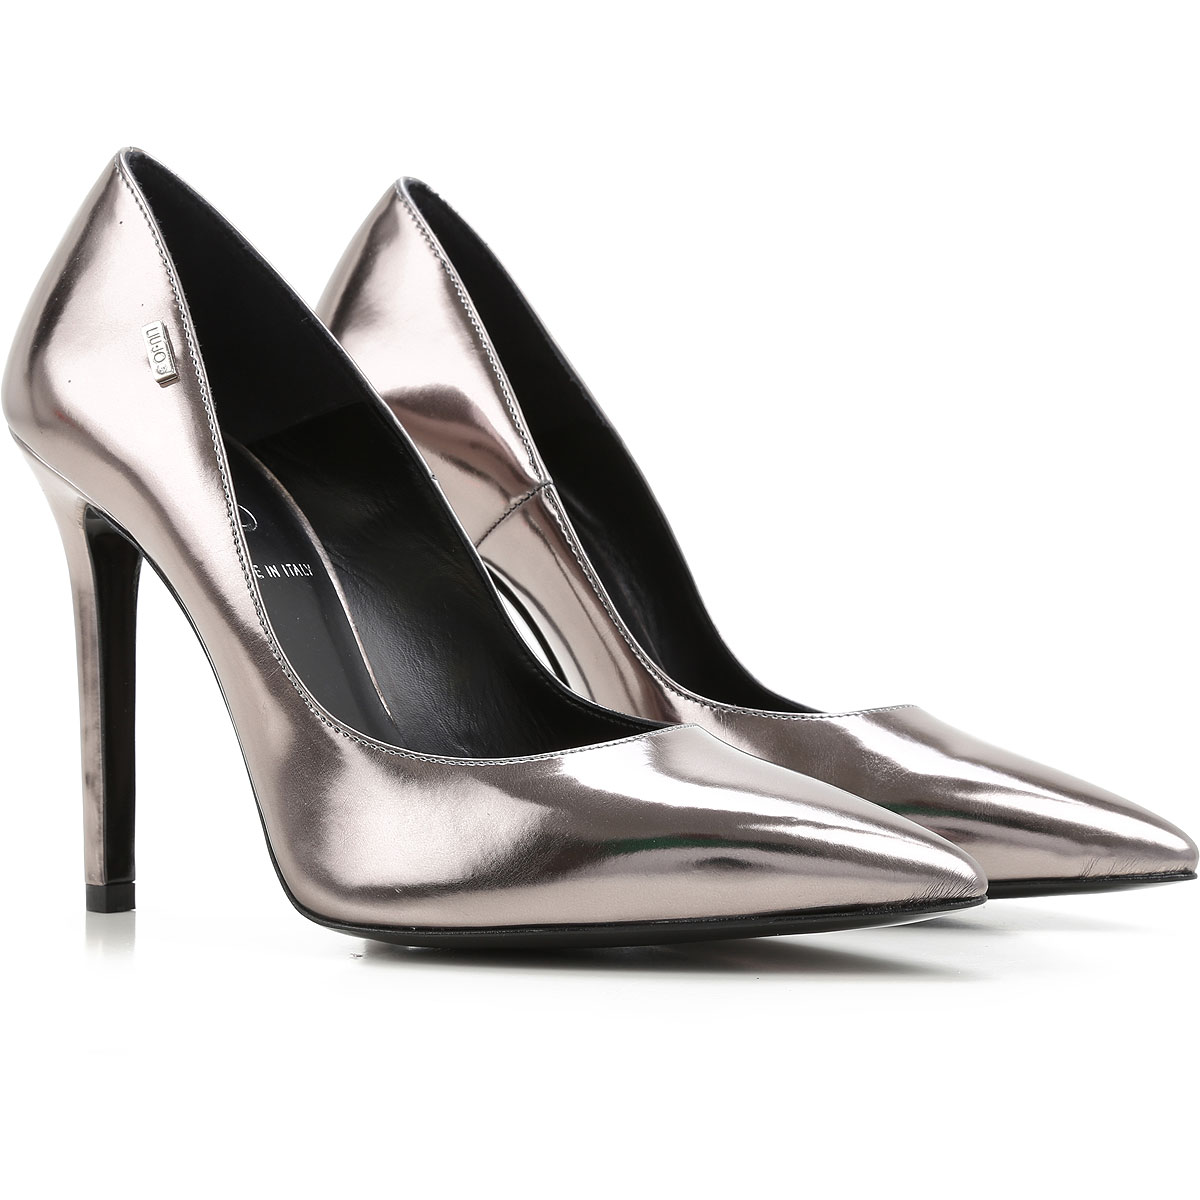 Liu Jo Patent Leather Heels Uqux1B